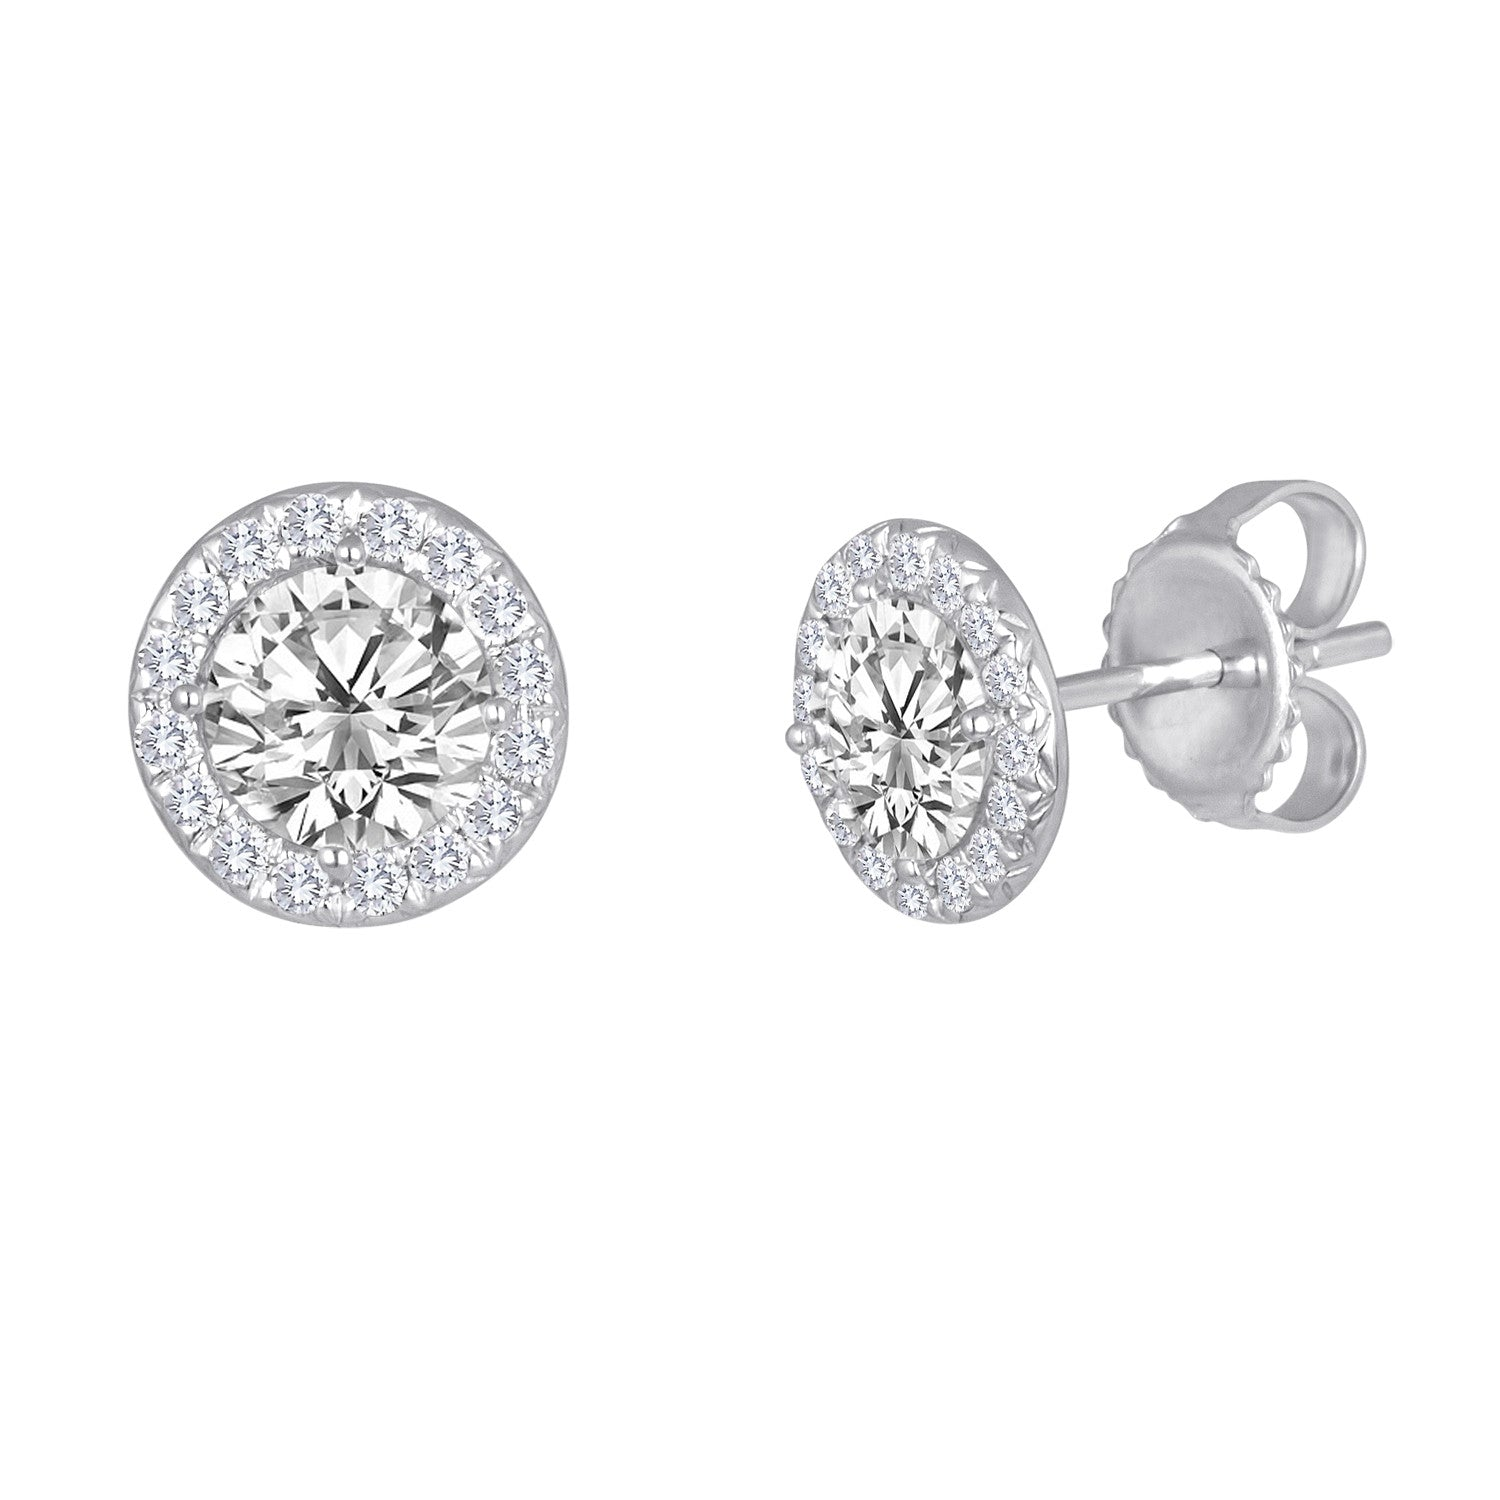 Halo Studs – Stephanie Gottlieb Fine Jewelry